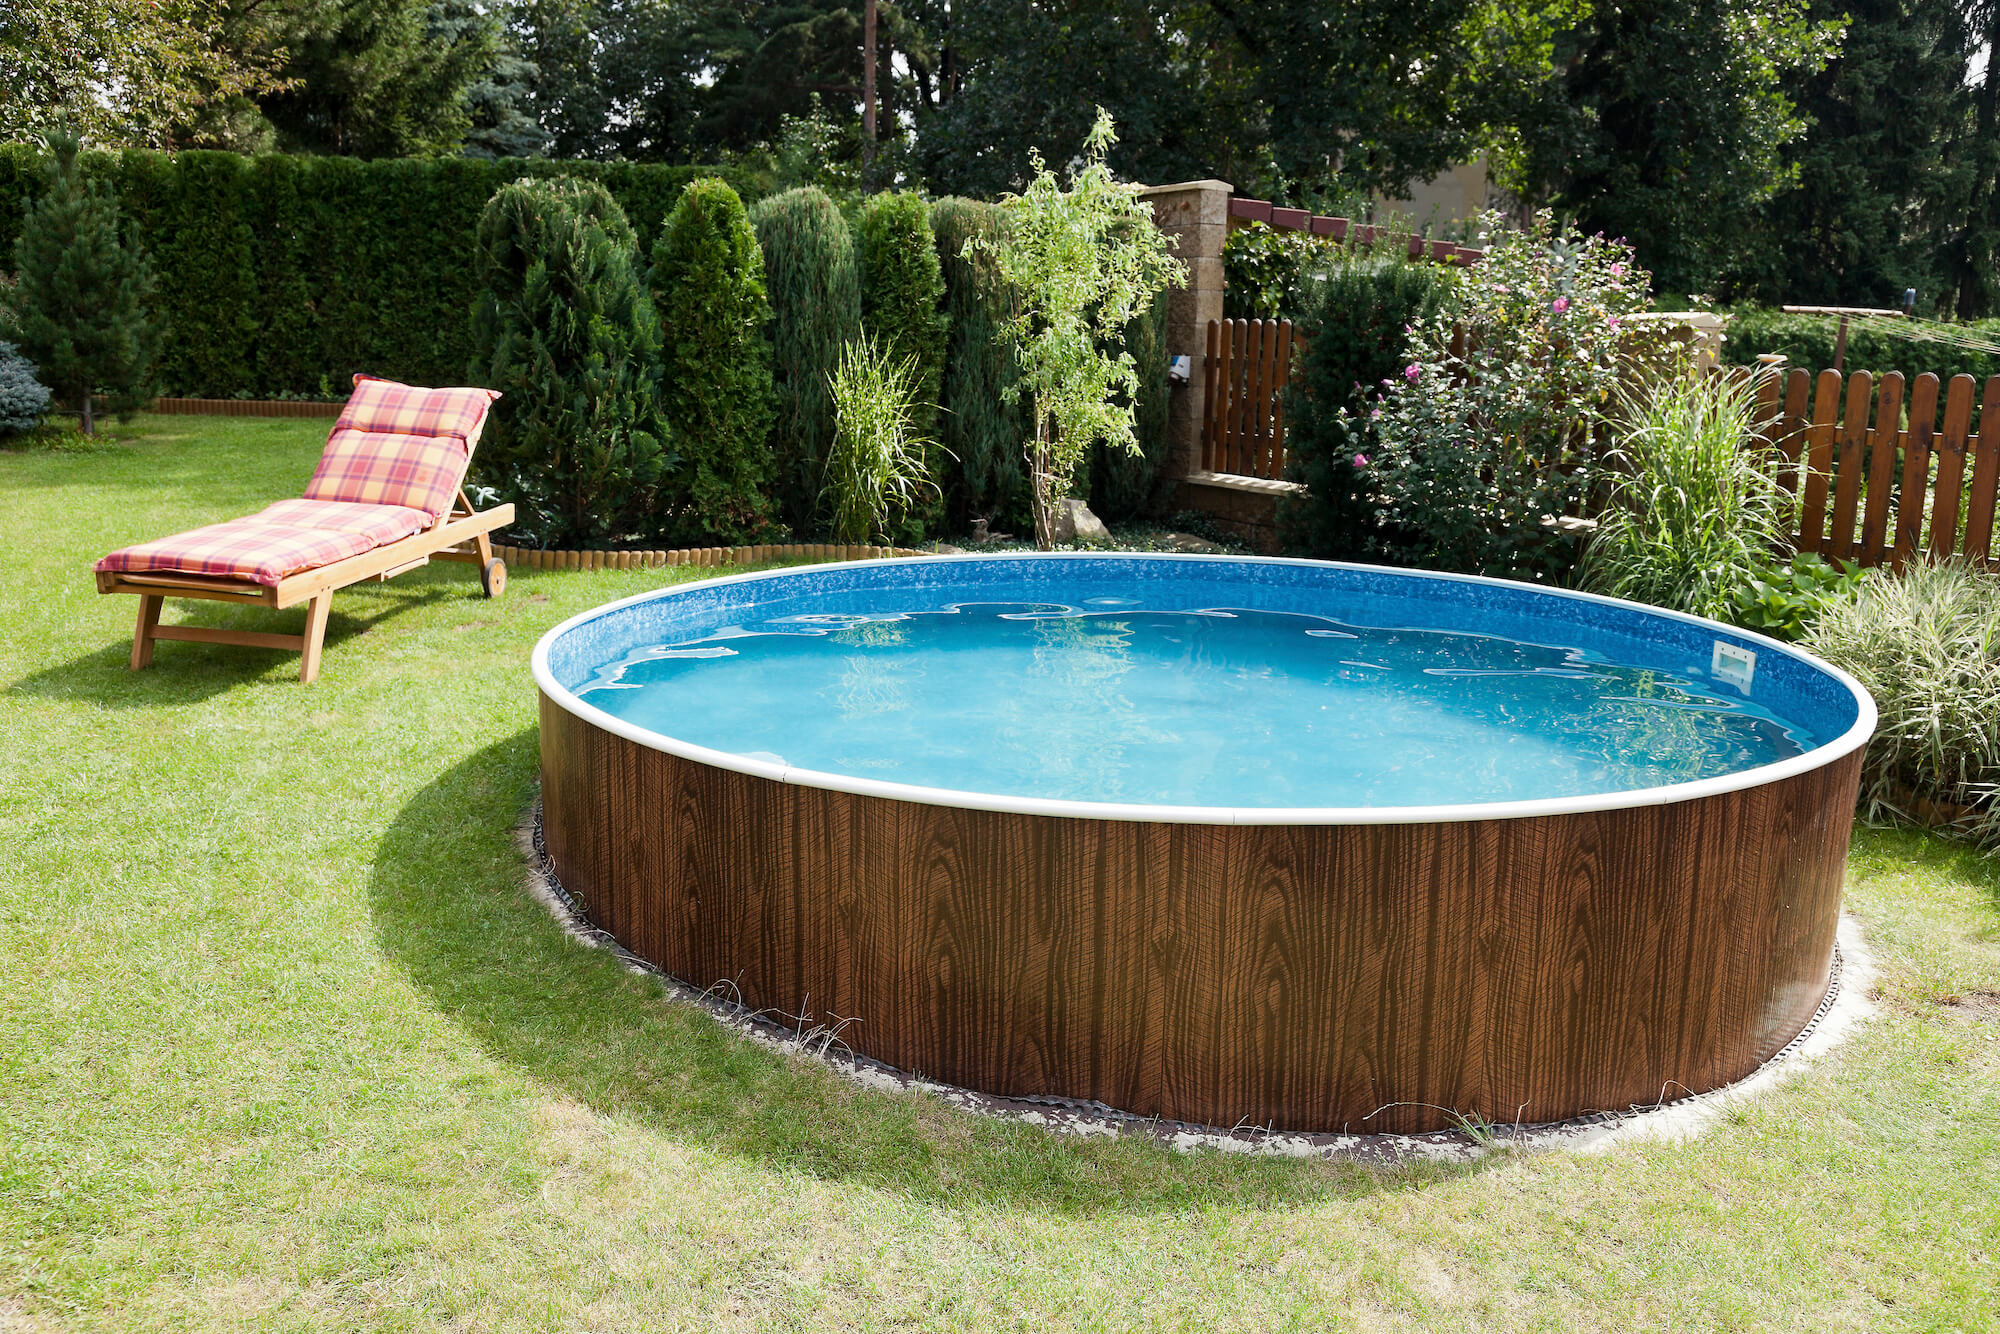 Above ground pools for sale online uk 1st direct for Above ground swimming pools uk